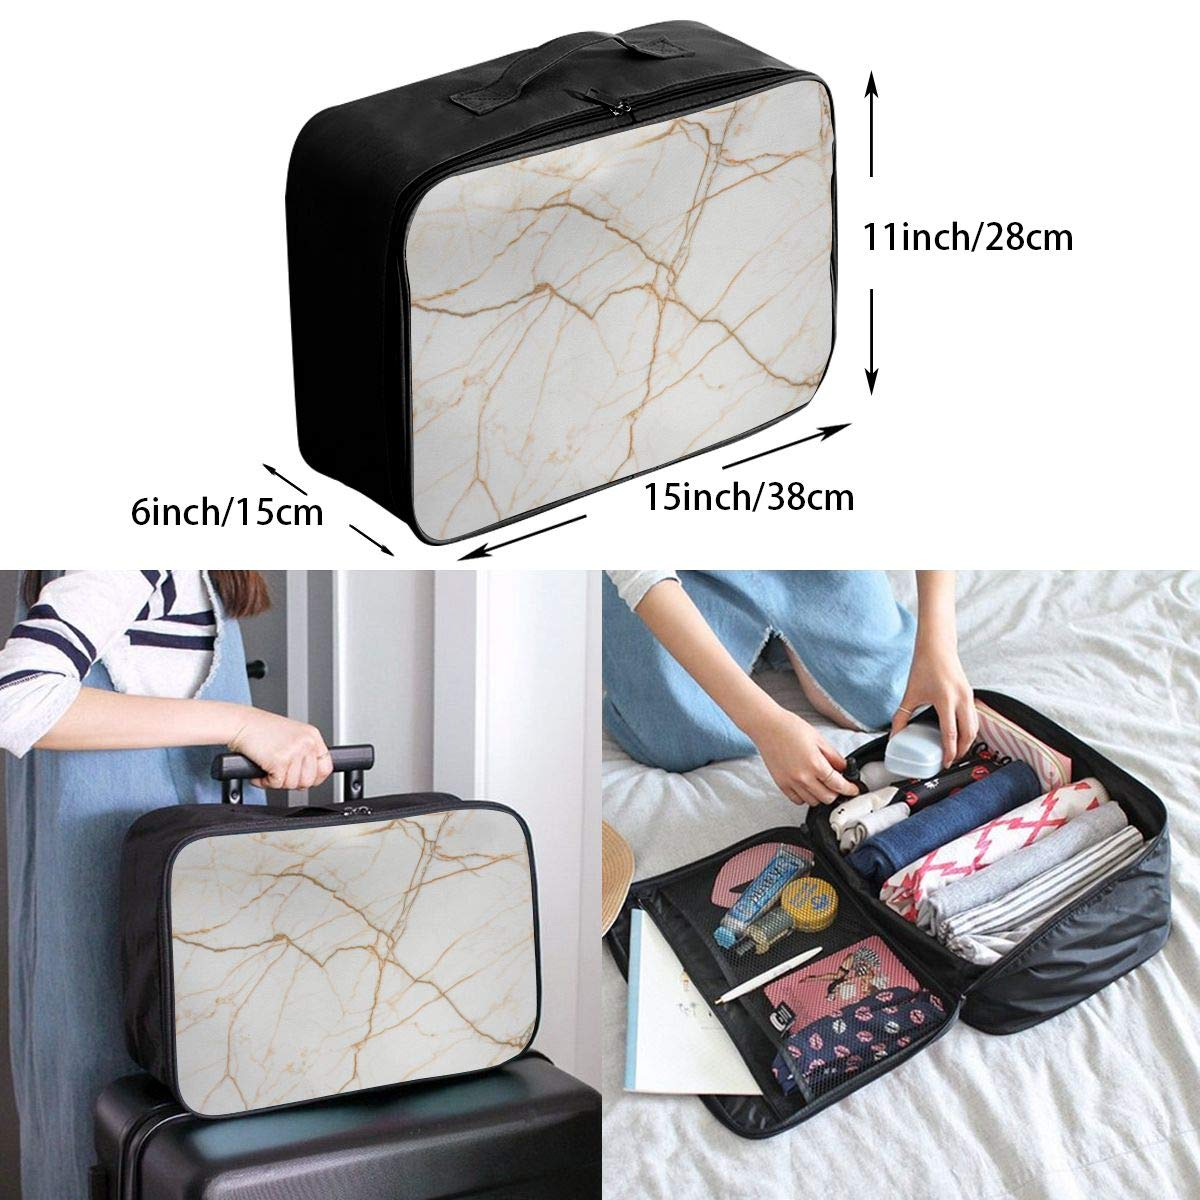 Beige Marble Gold Texture Travel Lightweight Waterproof Folding Storage Portable Luggage Duffle Tote Bag Large Capacity In Trolley Handle Bags 6x11x15 Inch